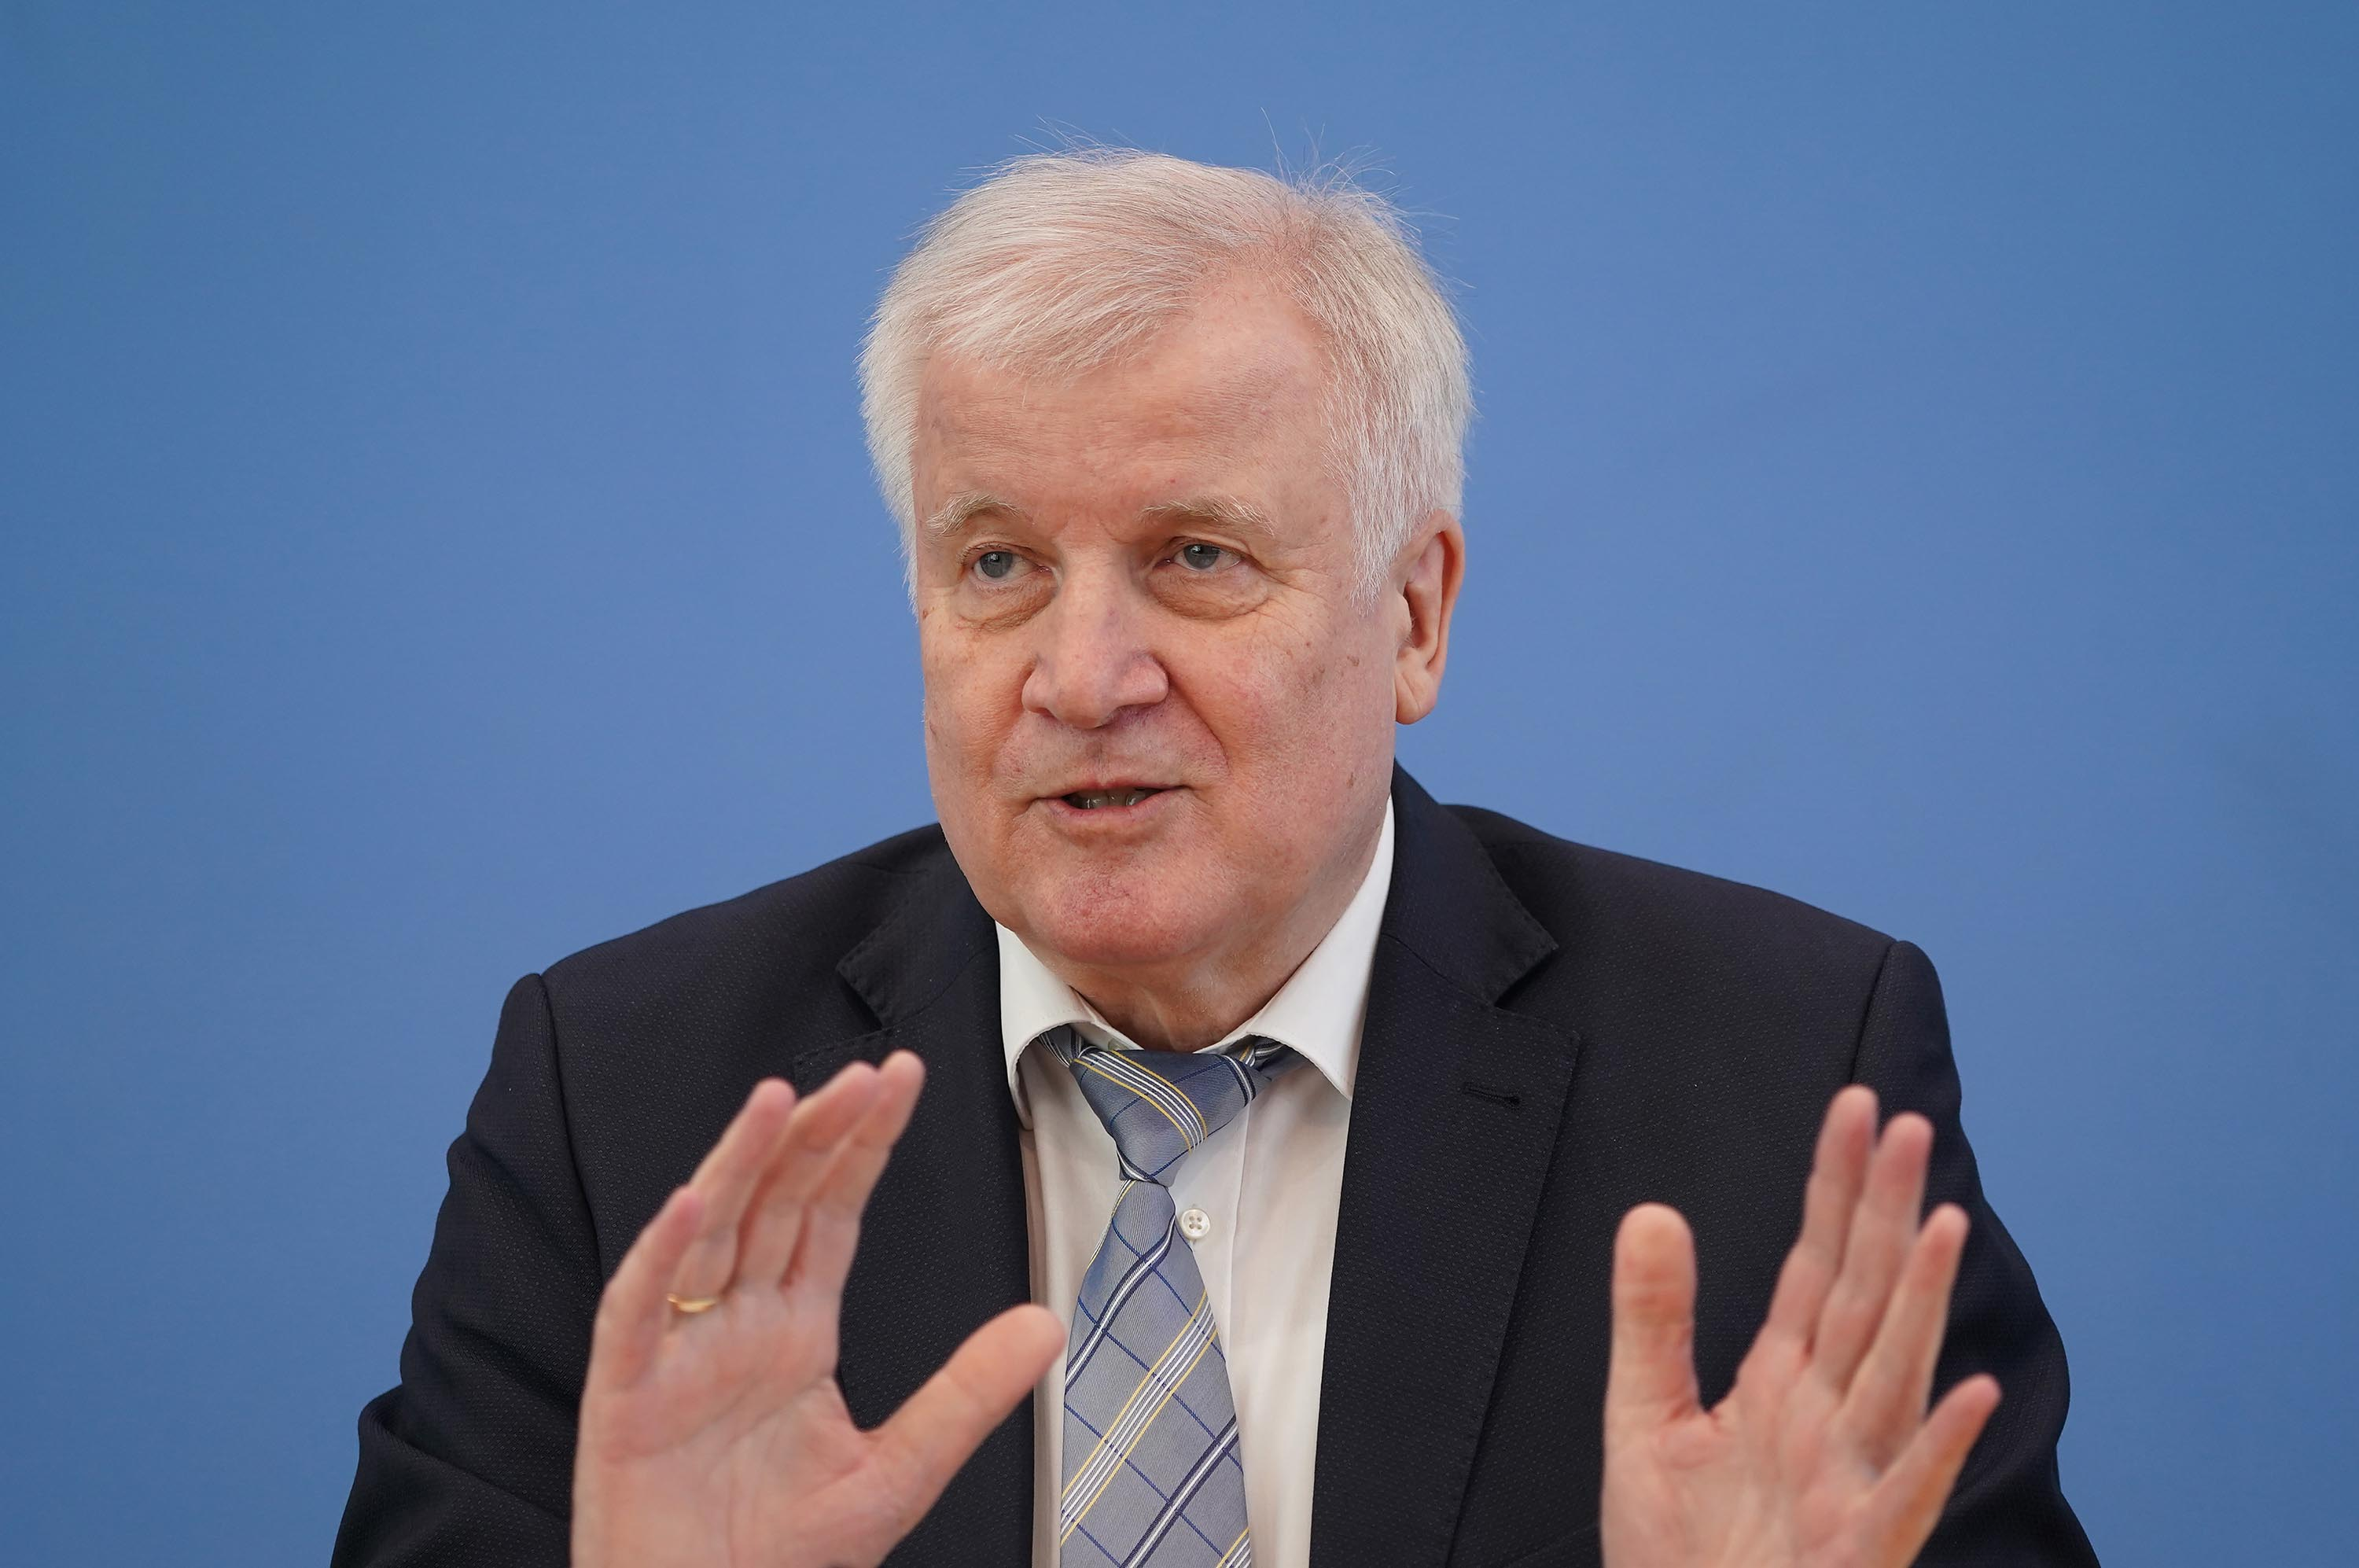 German Interior Minister Horst Seehofer speaks to the media on May 13 in Berlin, Germany.